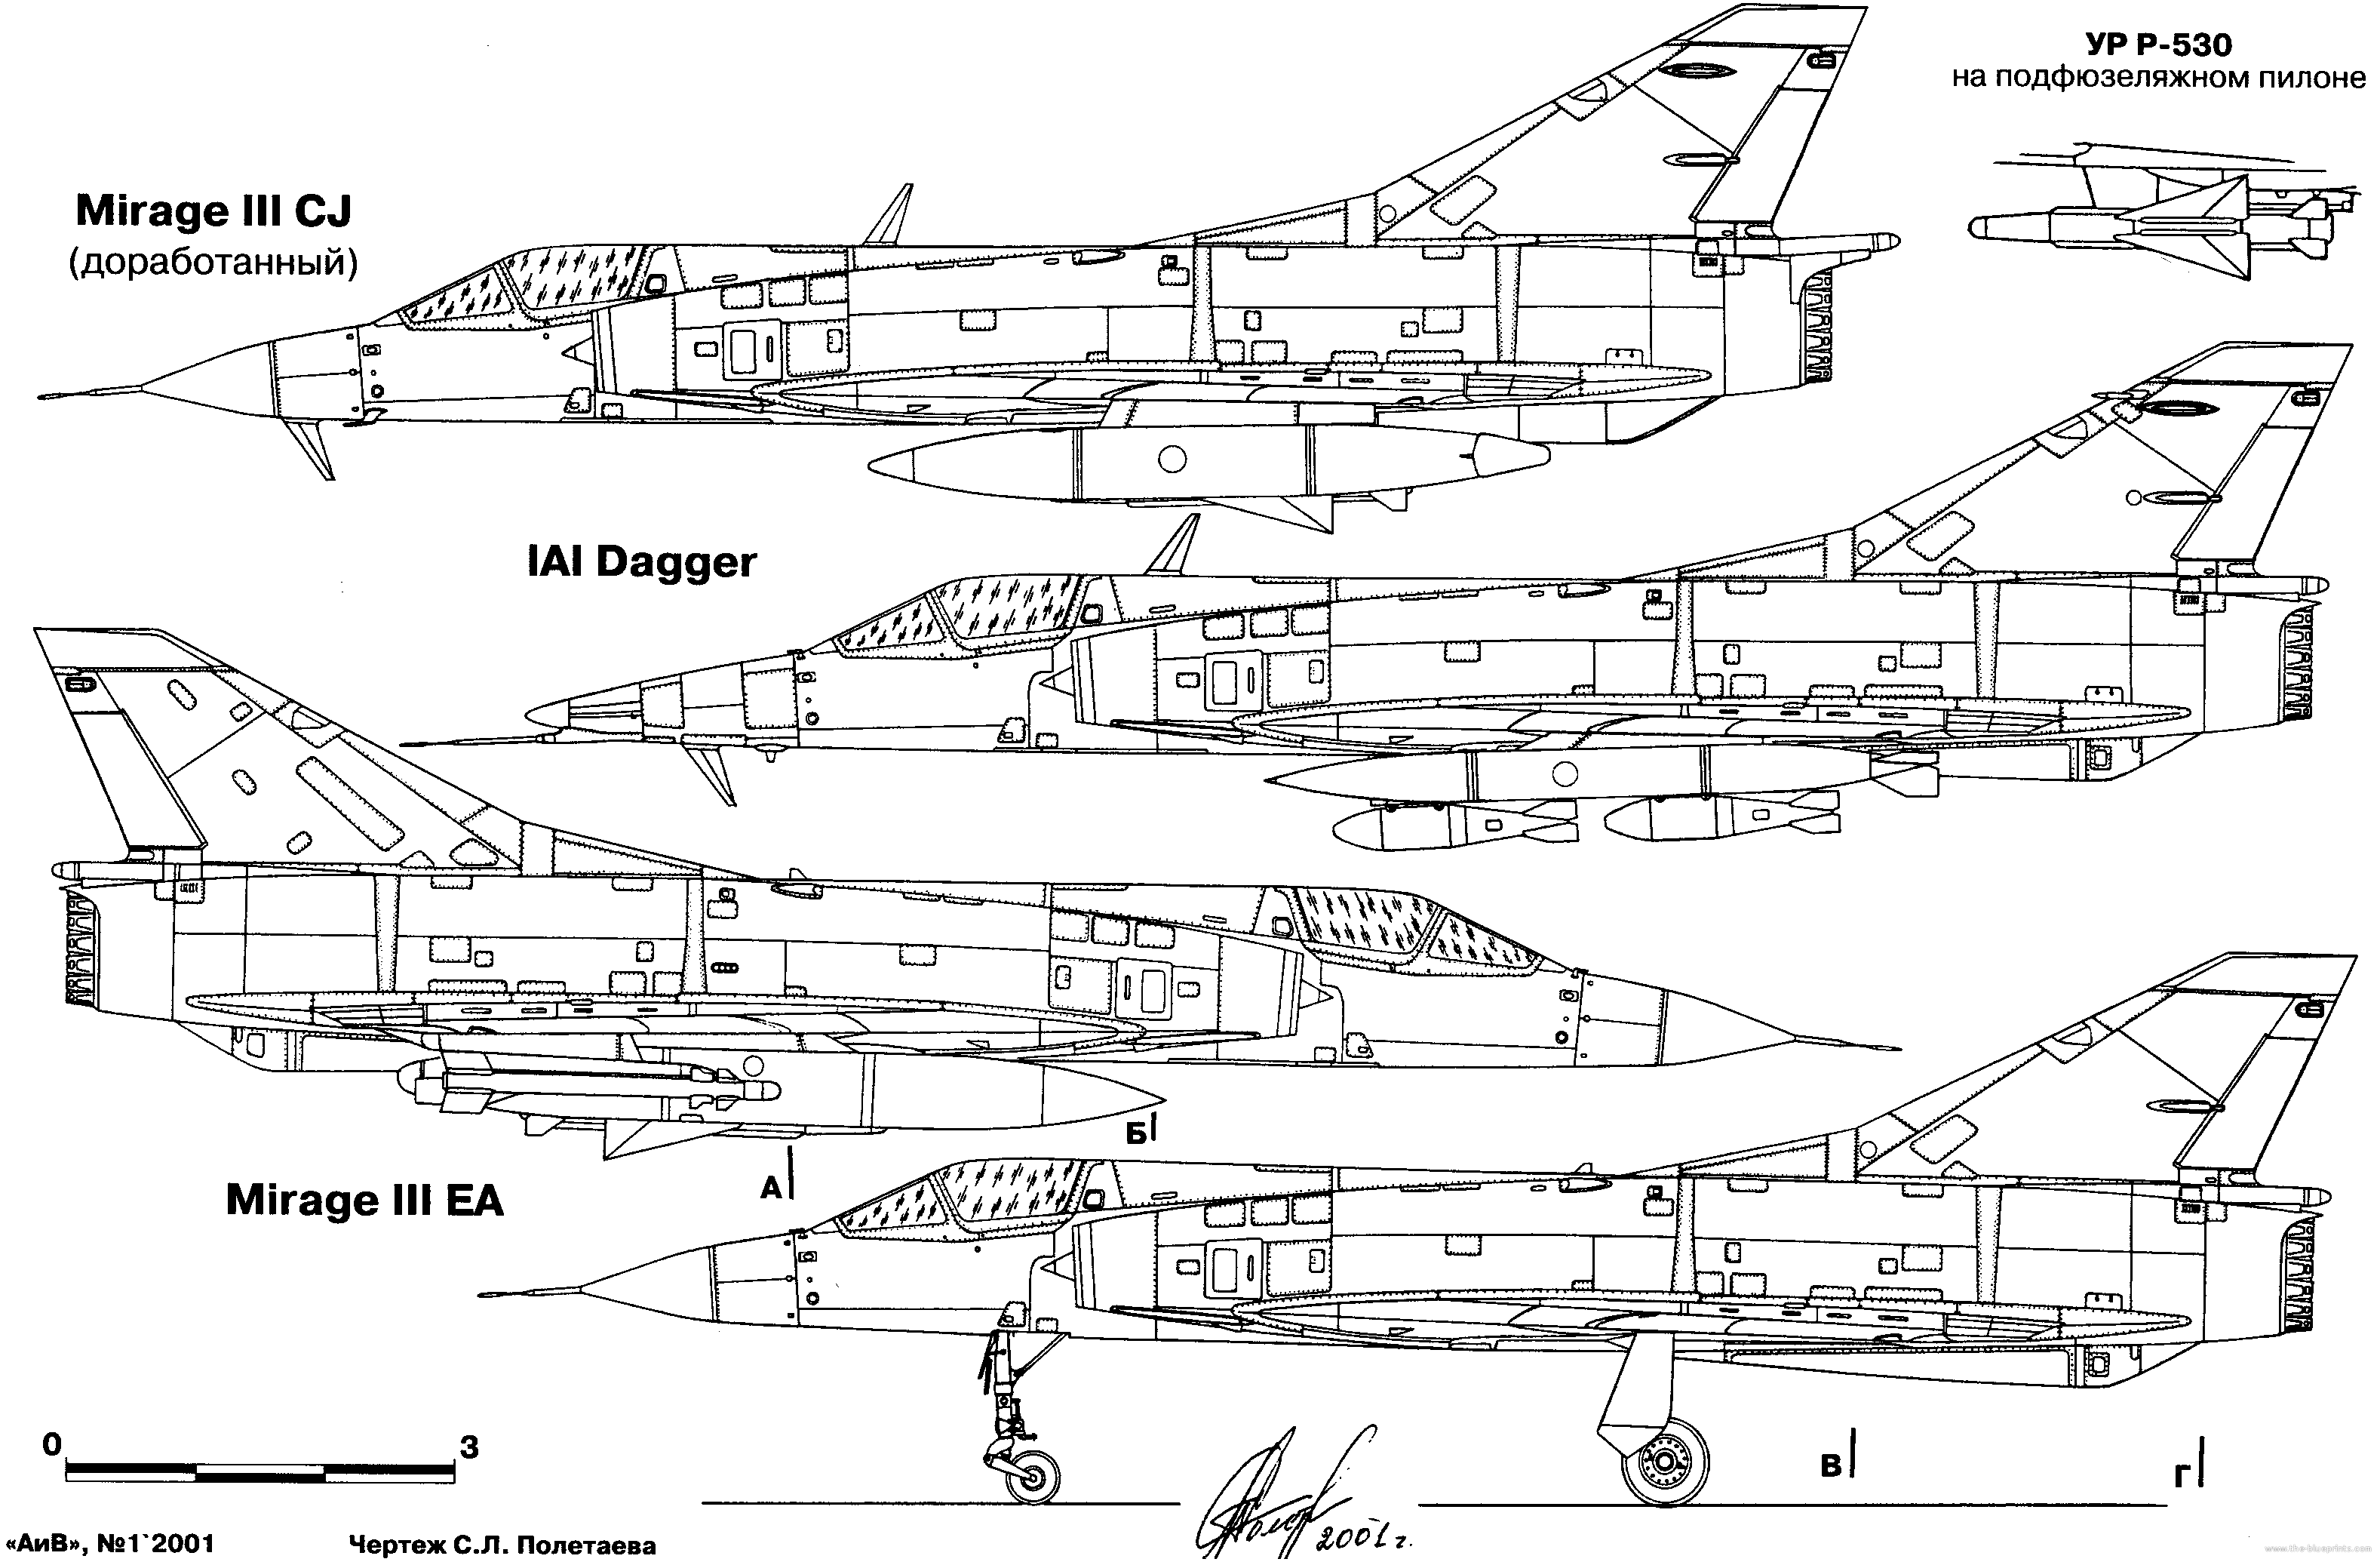 Mirage Iii Diagram Reinvent Your Wiring 99 Mitsubishi Fuse Box Blueprints U003e Modern Airplanes Dassault Rh The Com Boil Wind